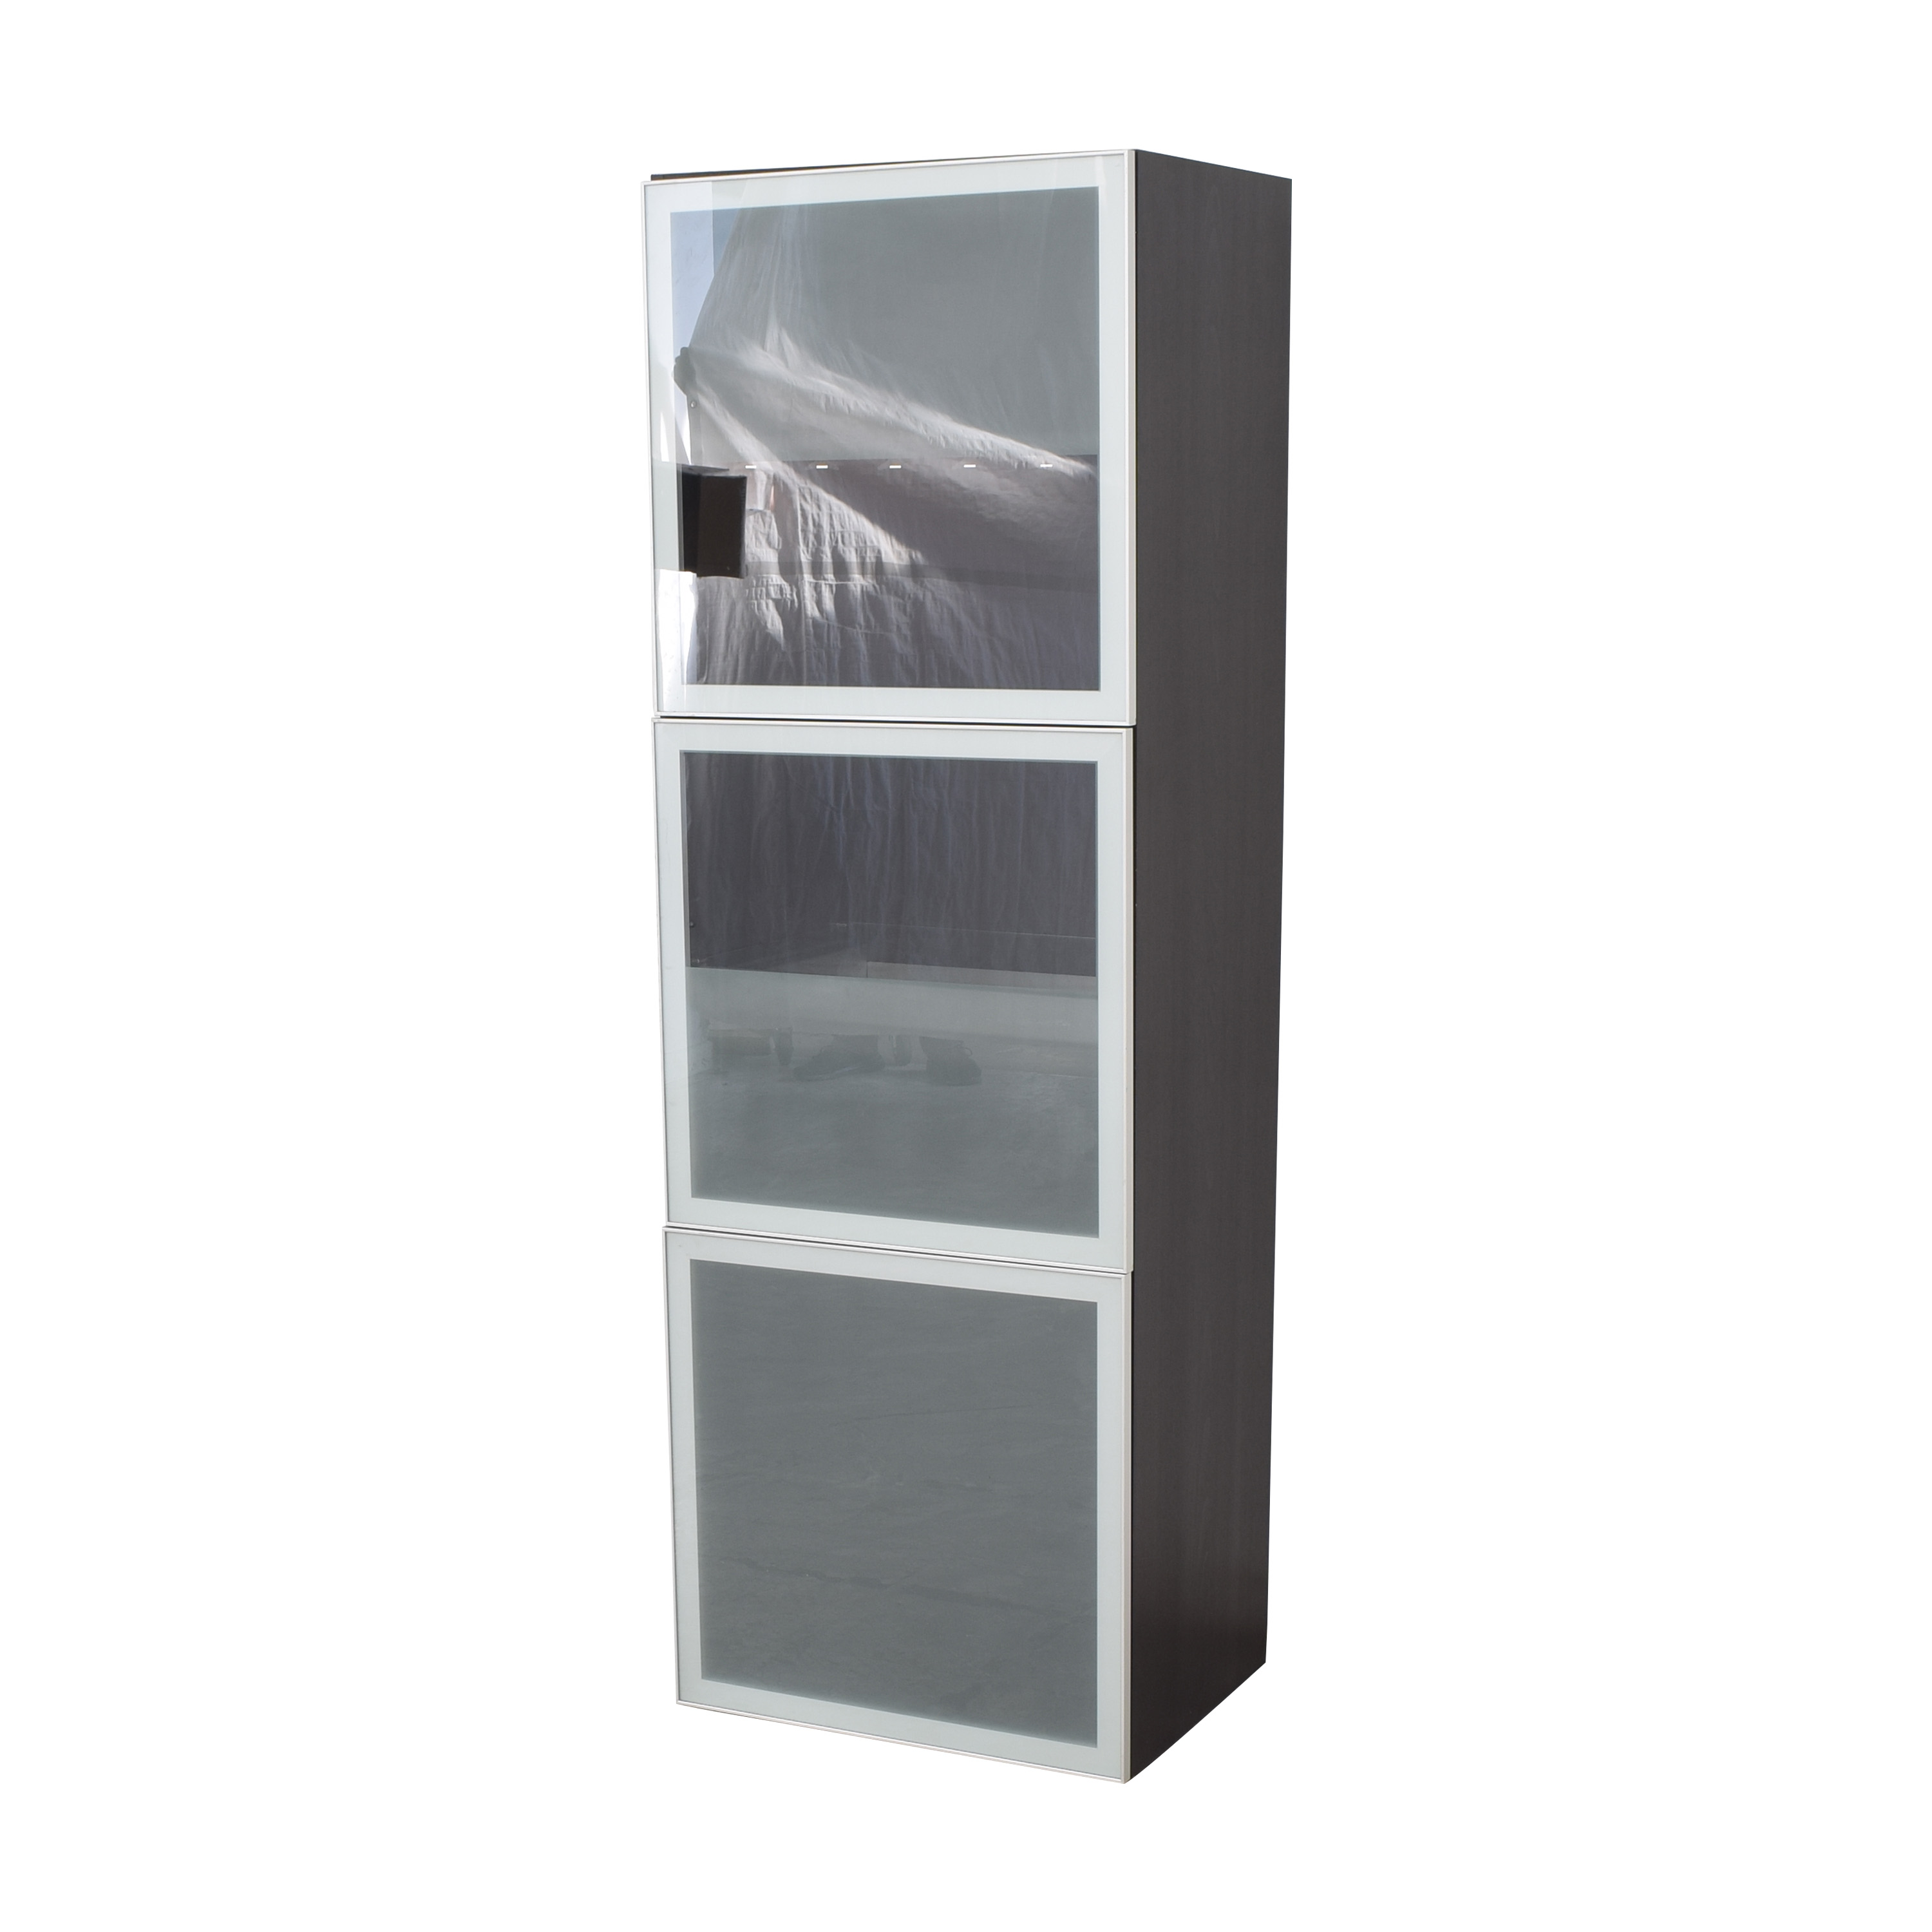 Design Within Reach Design Within Reach Vertical Cabinet dimensions